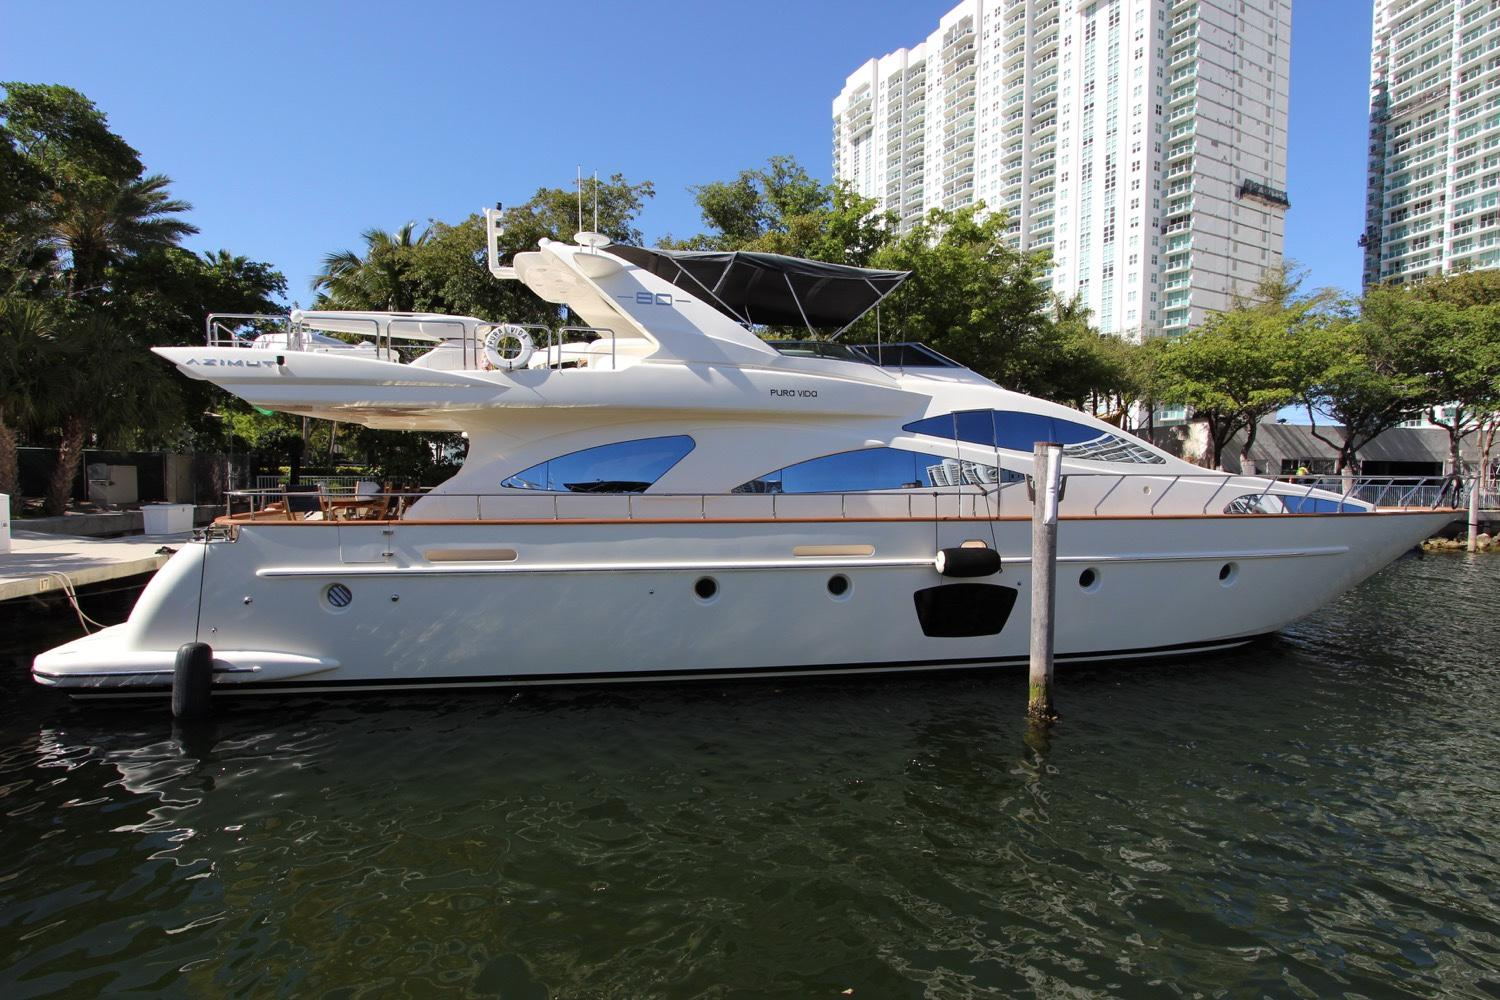 2018 Azimut 80 Flybride for sale in Aventura